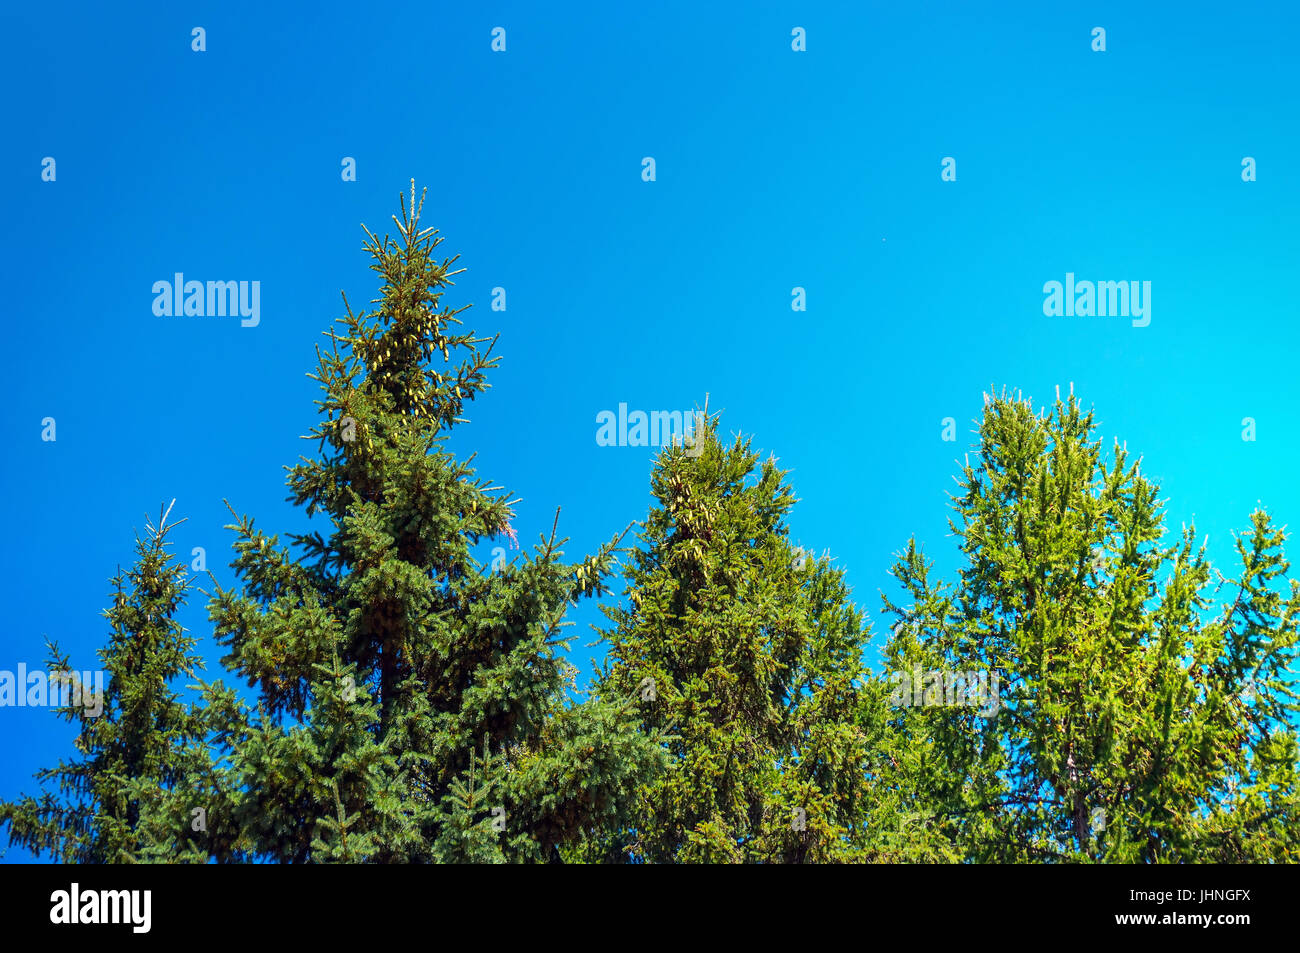 Spruce in the summer, spruce against the blue sky, pine - Stock Image